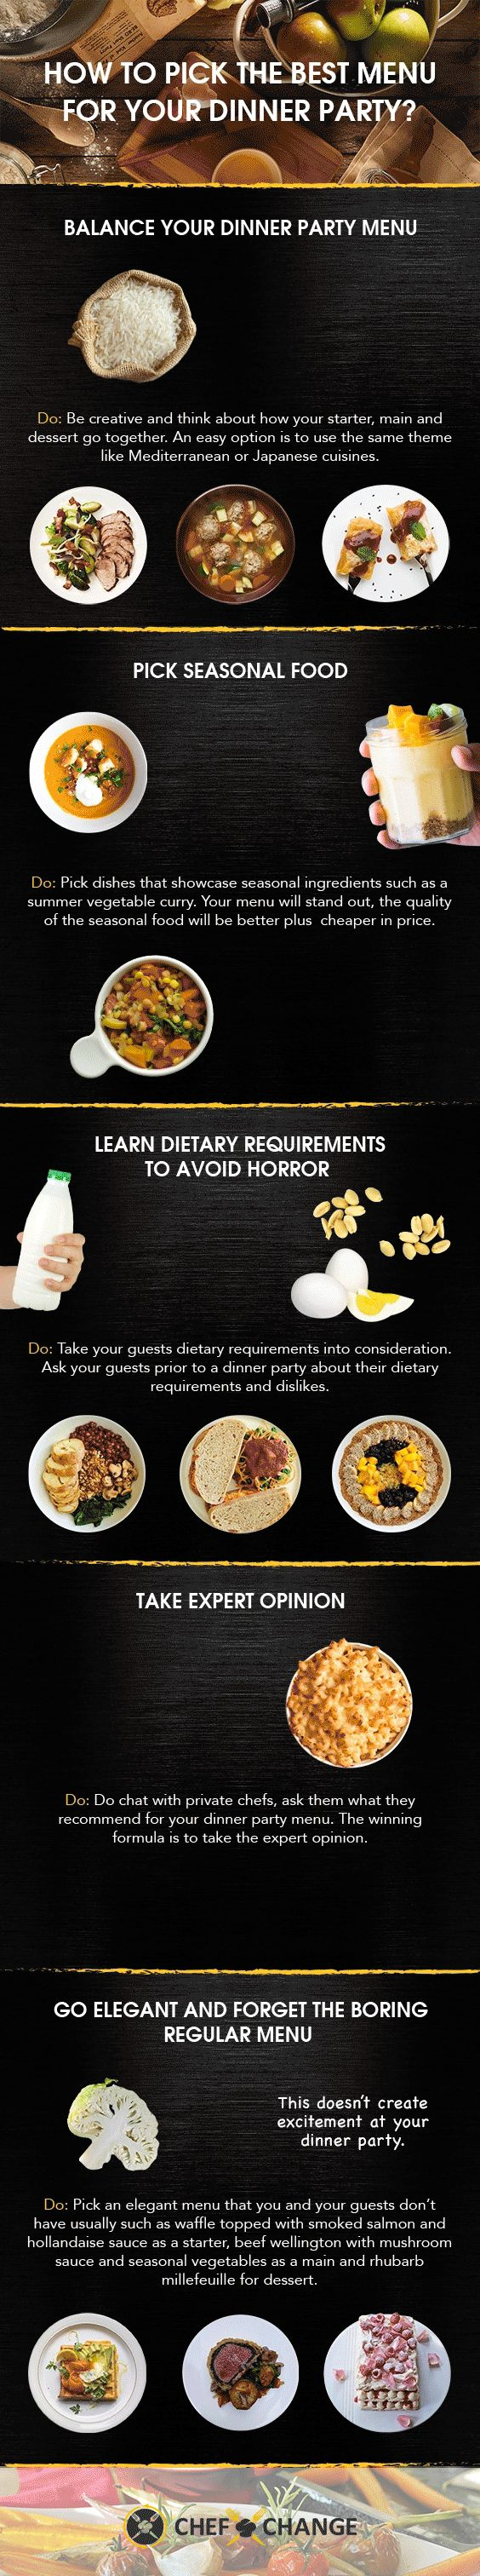 Elegant Dinner Party Menu Ideas Part - 44: How To Pick The Best Dinner Party Menu That You And Your Guest Will Love?  [Infographic]